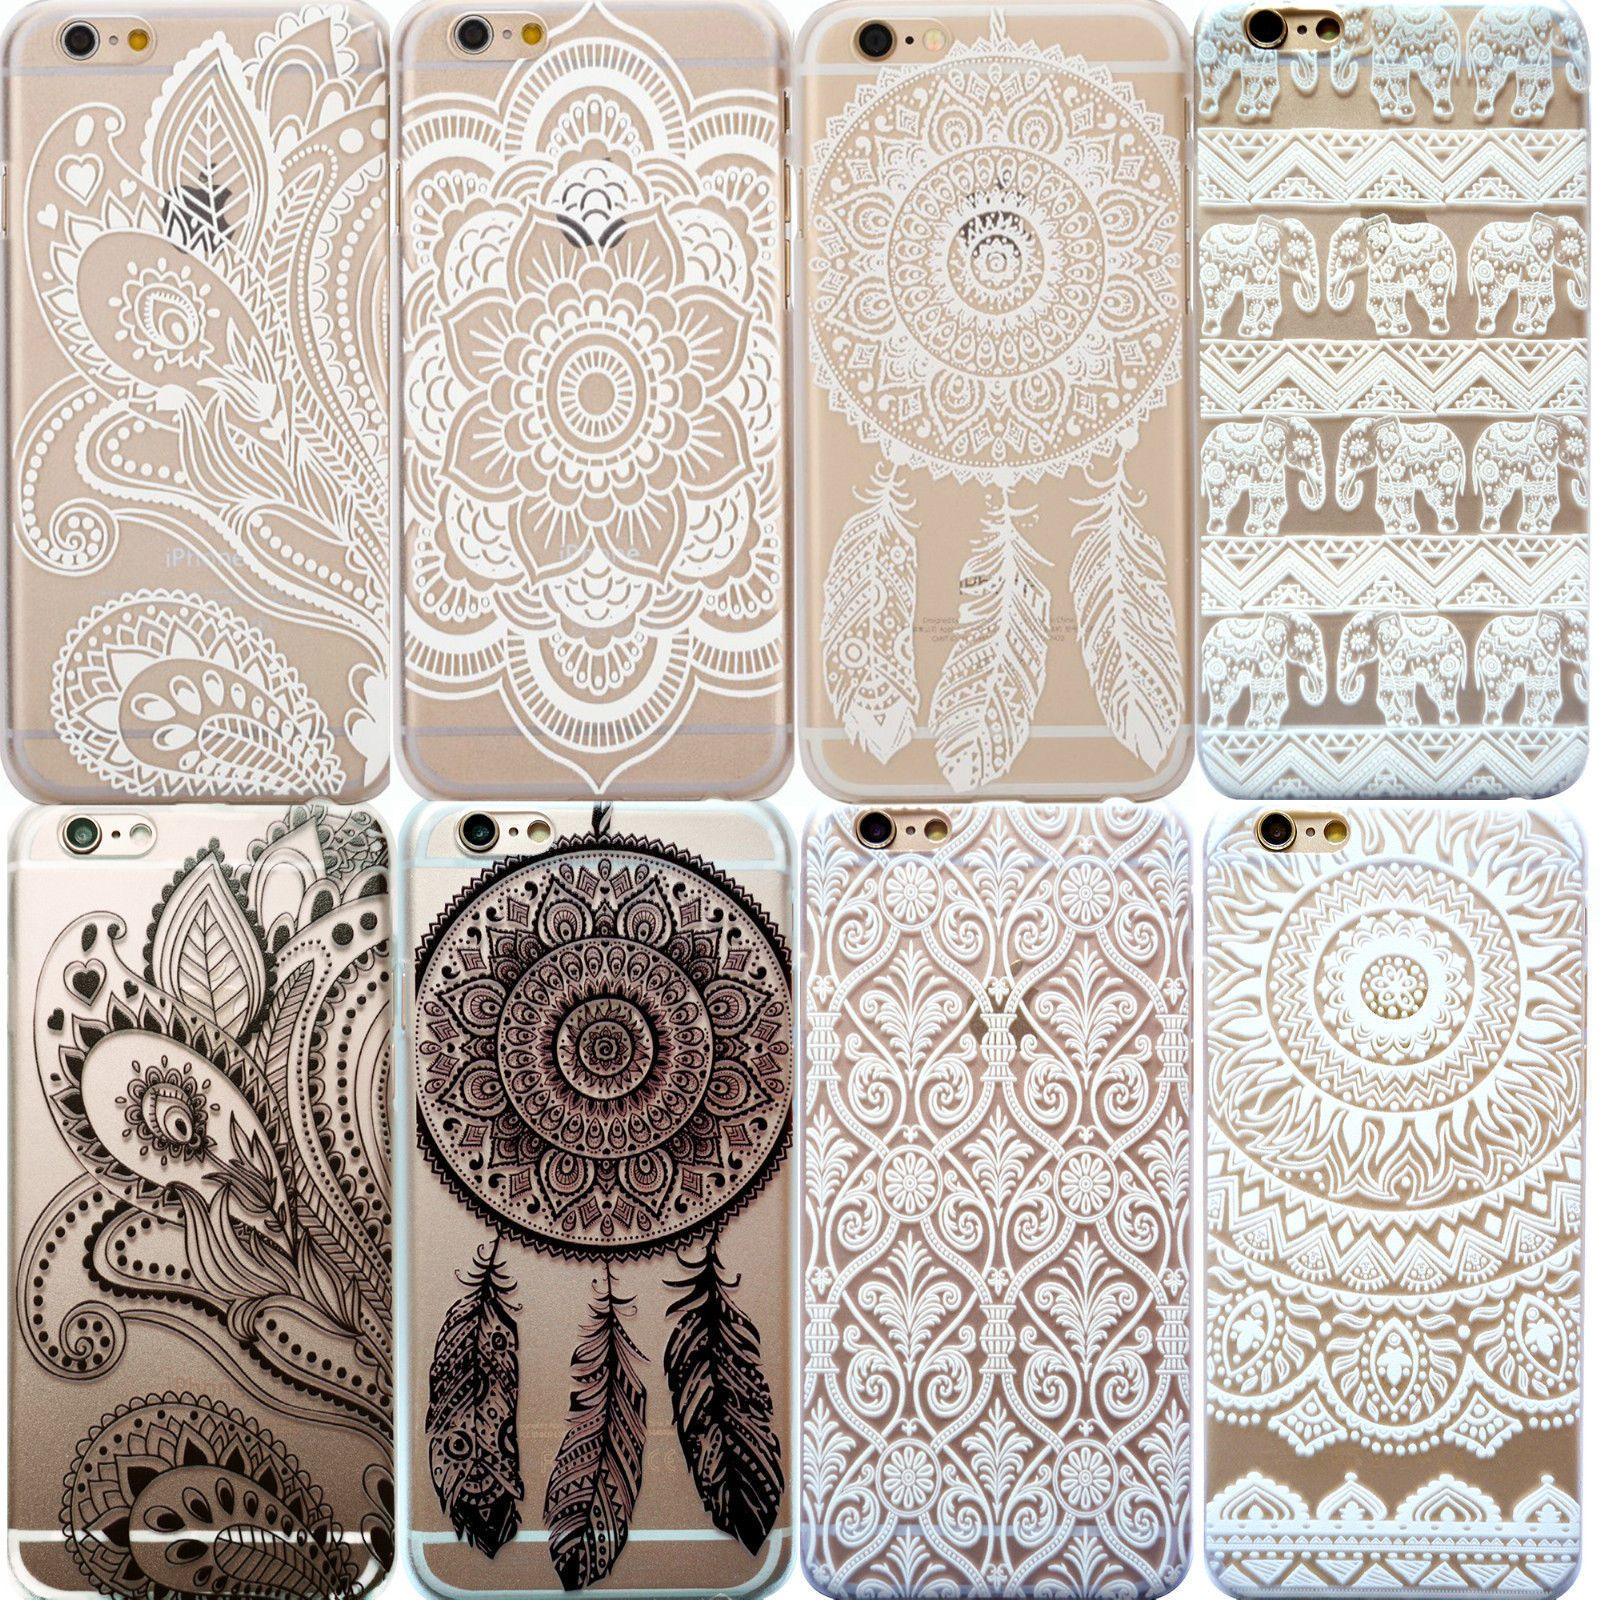 ddf26a00b95 Henna Flower Paisley Tribal Elephant Cover Phone Case For Iphone 5S 5C Se 6  6S +